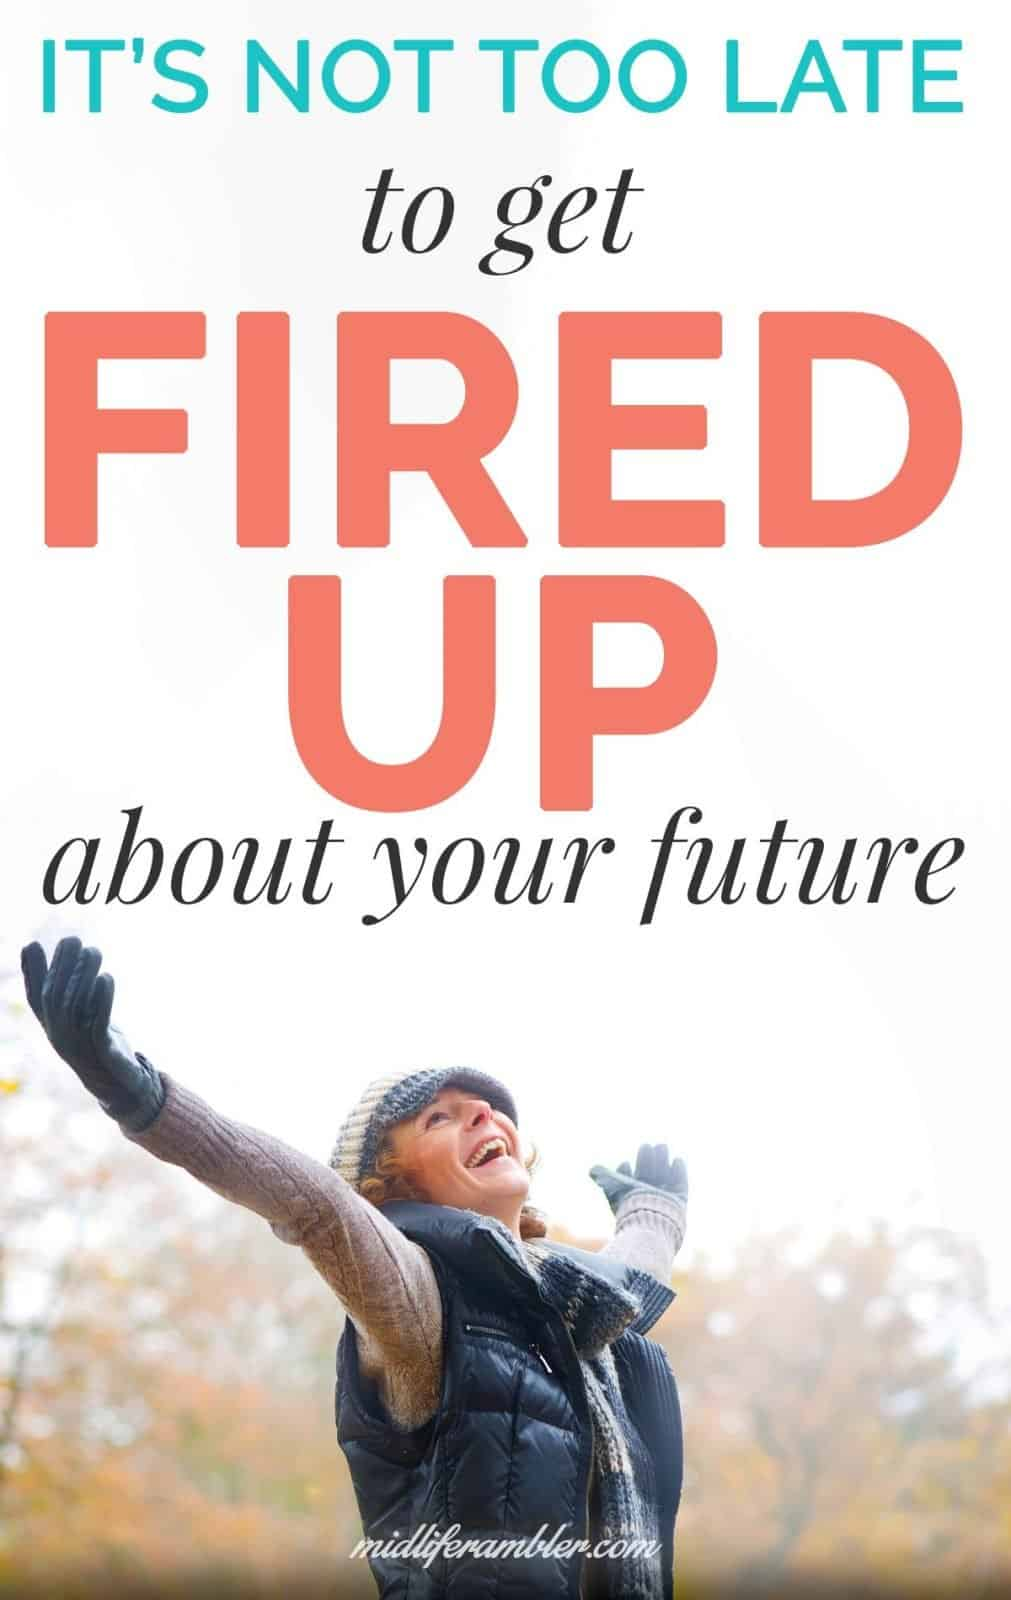 It's not too late to get fired up about your future